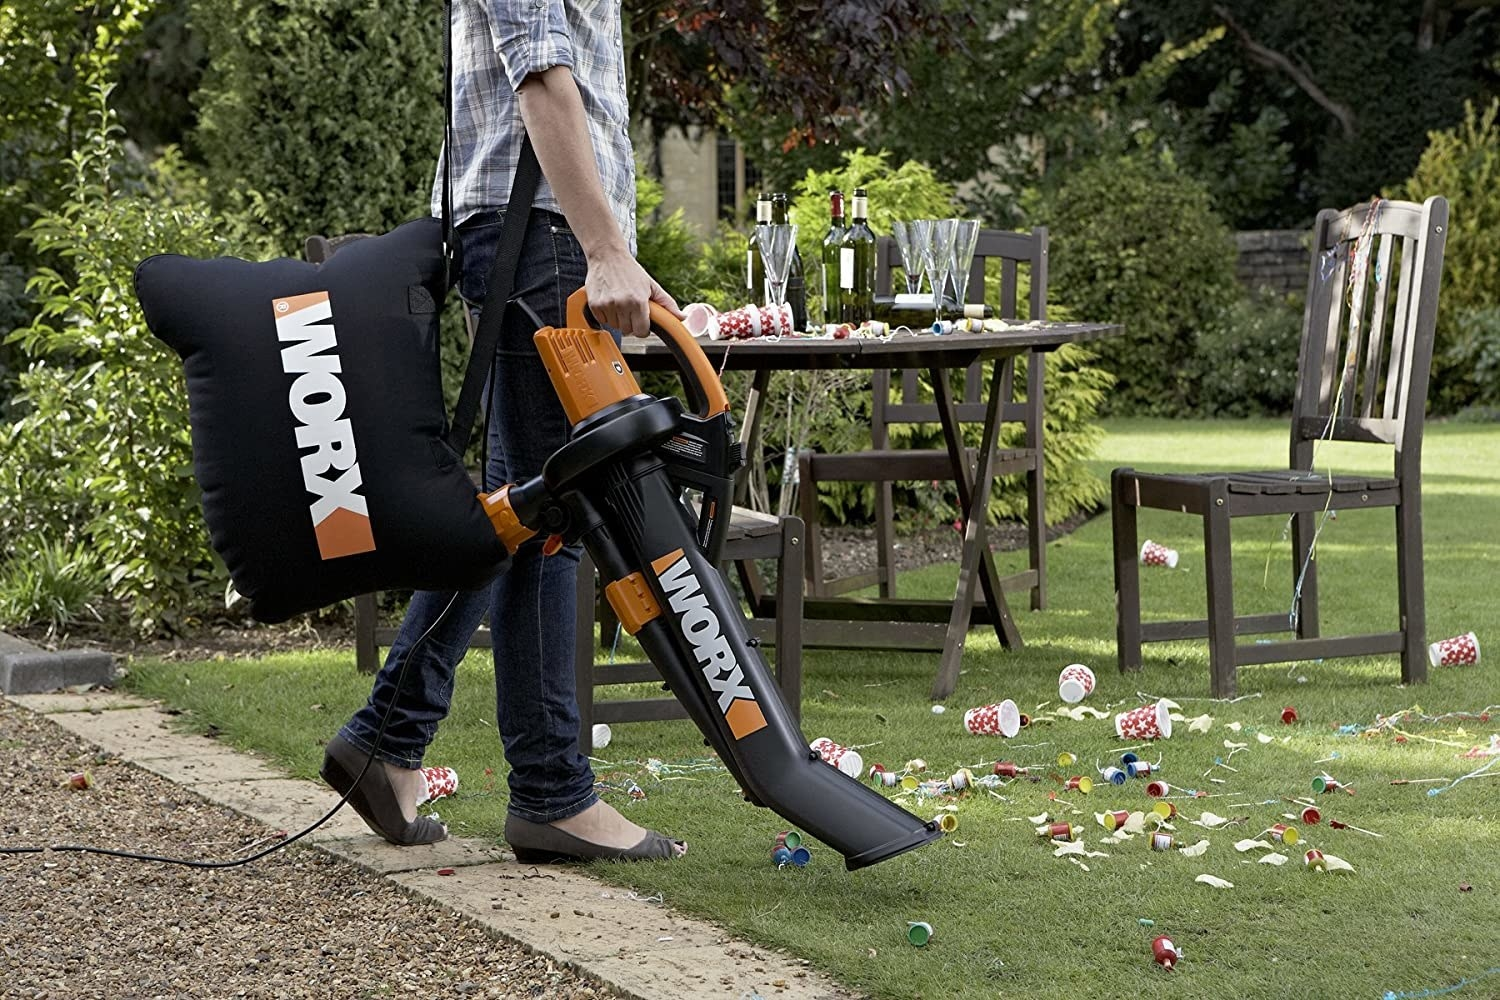 A model using the leaf blower with the mulcher bag around their shoulder